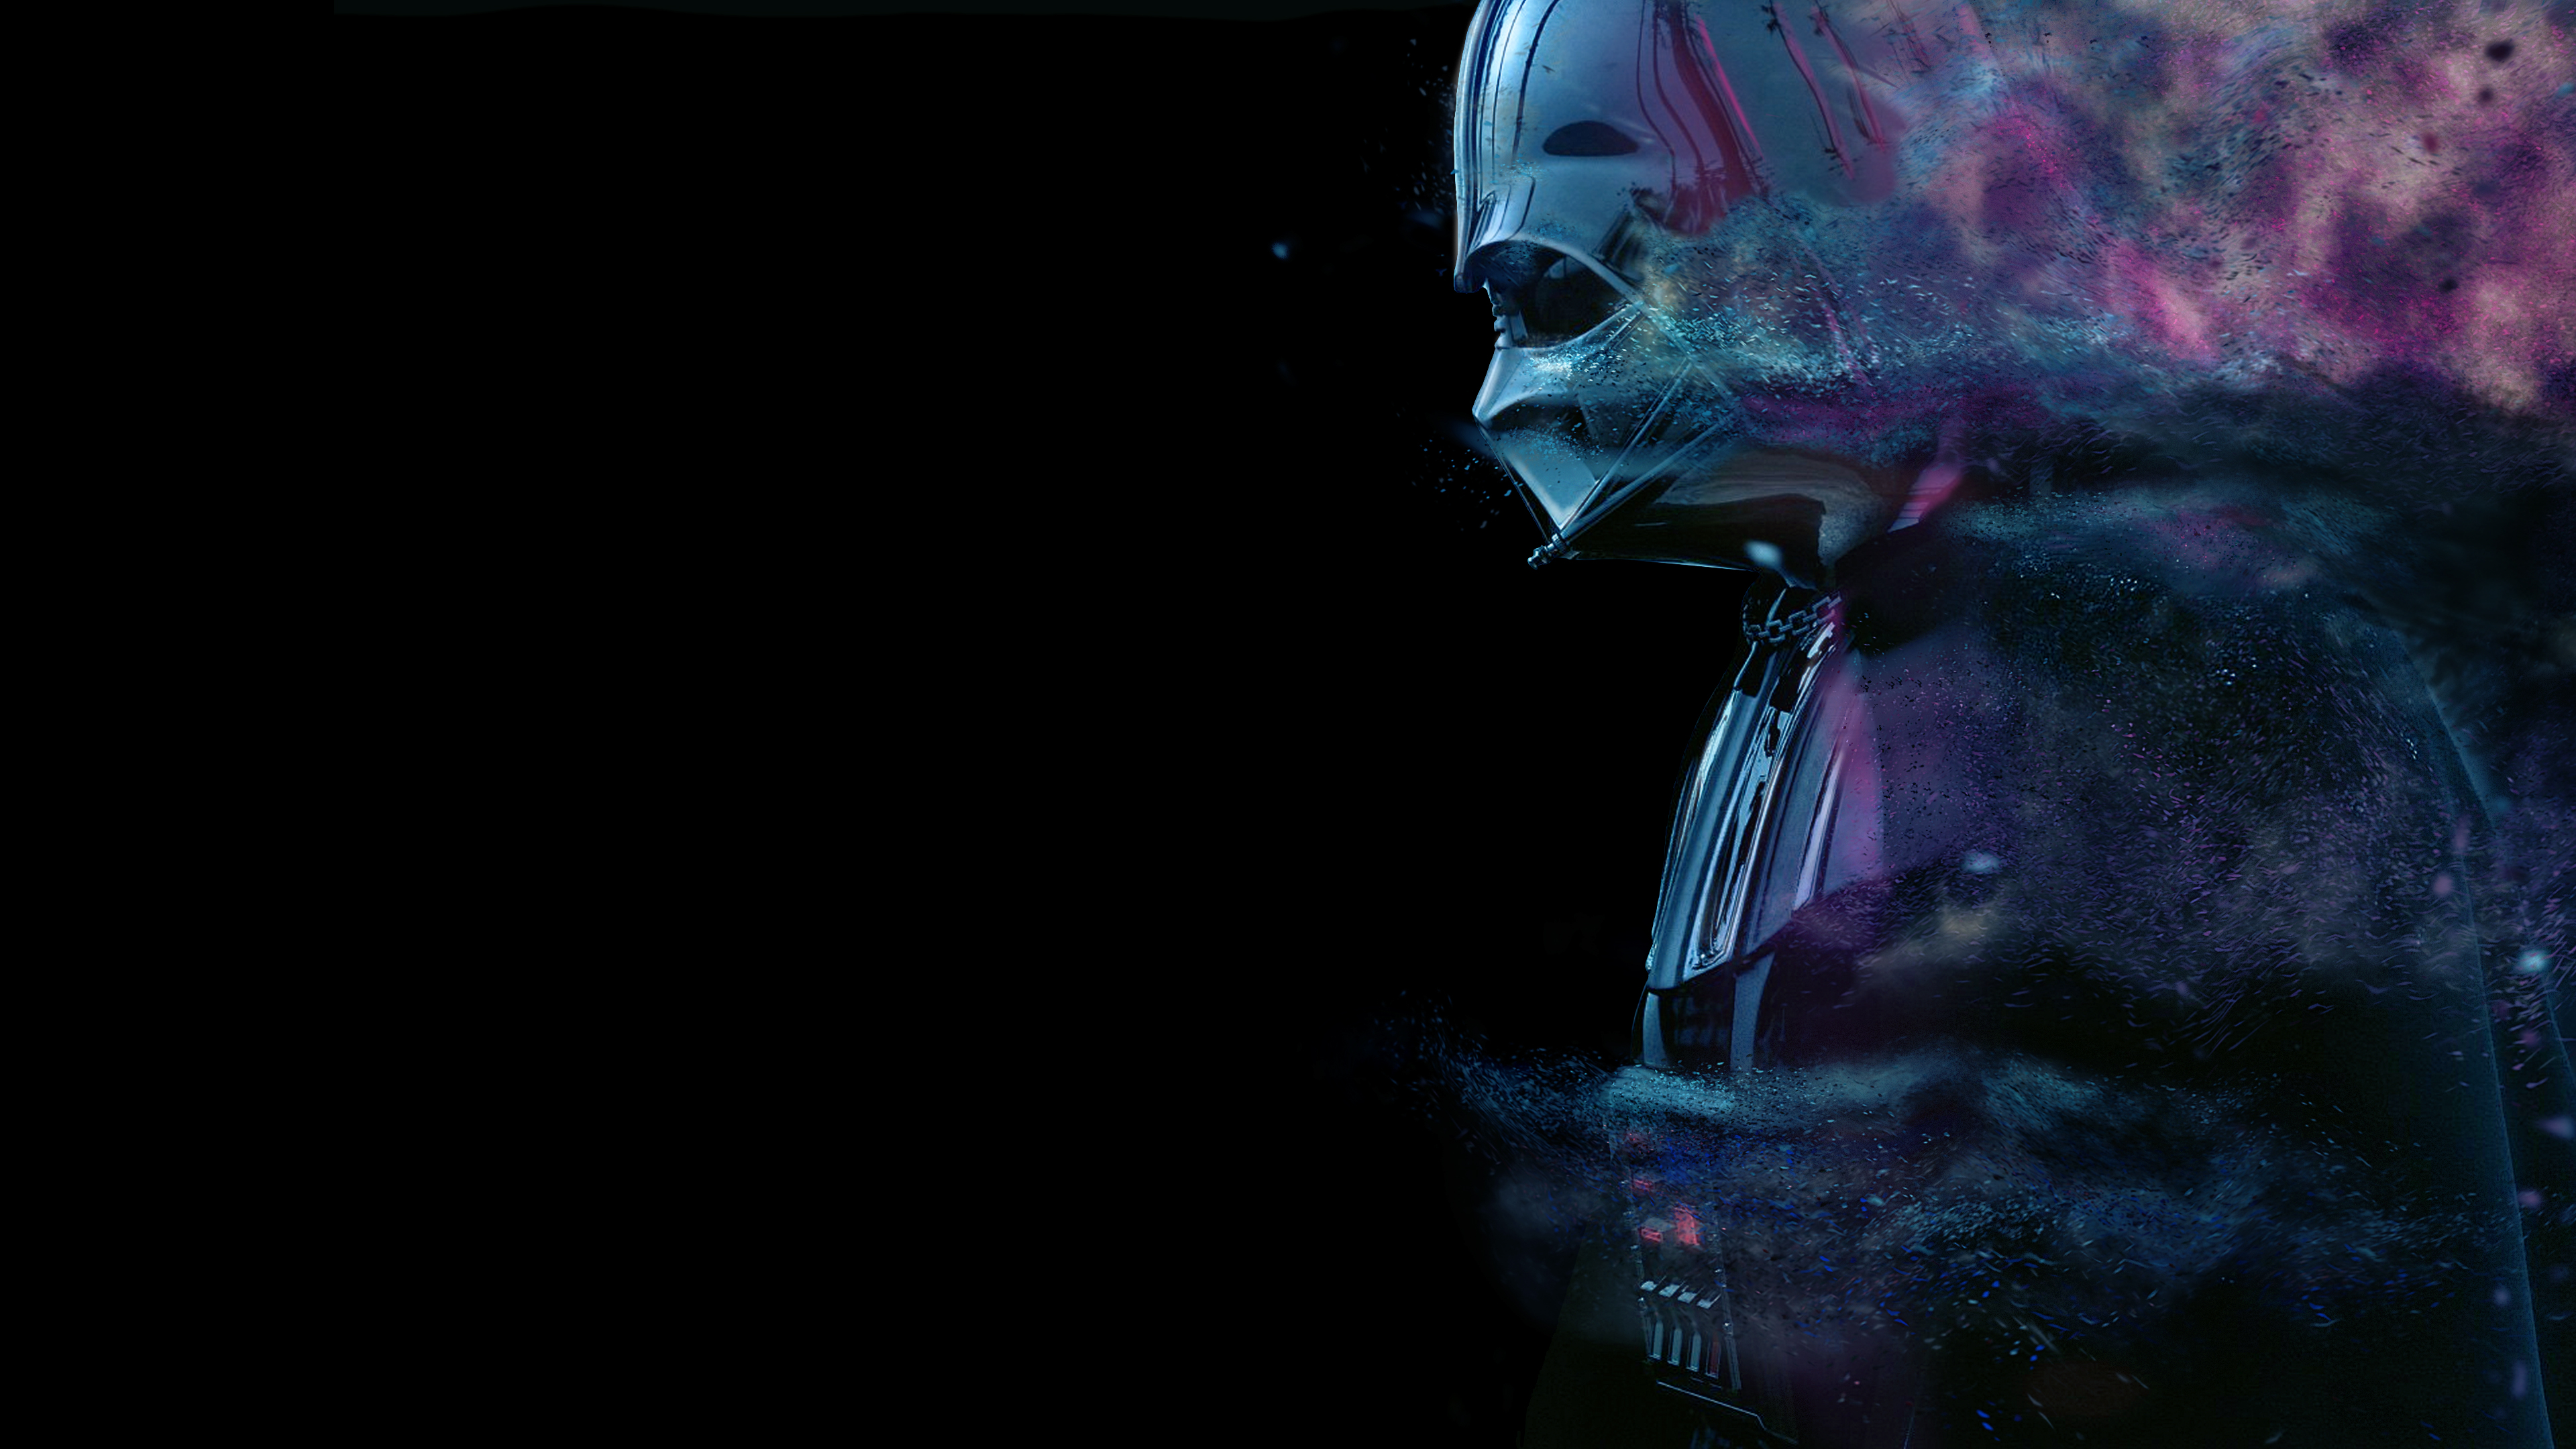 Neon Vader 4k Ultra Hd Wallpaper Background Image 3840x2160 Id 1041660 Wallpaper Abyss